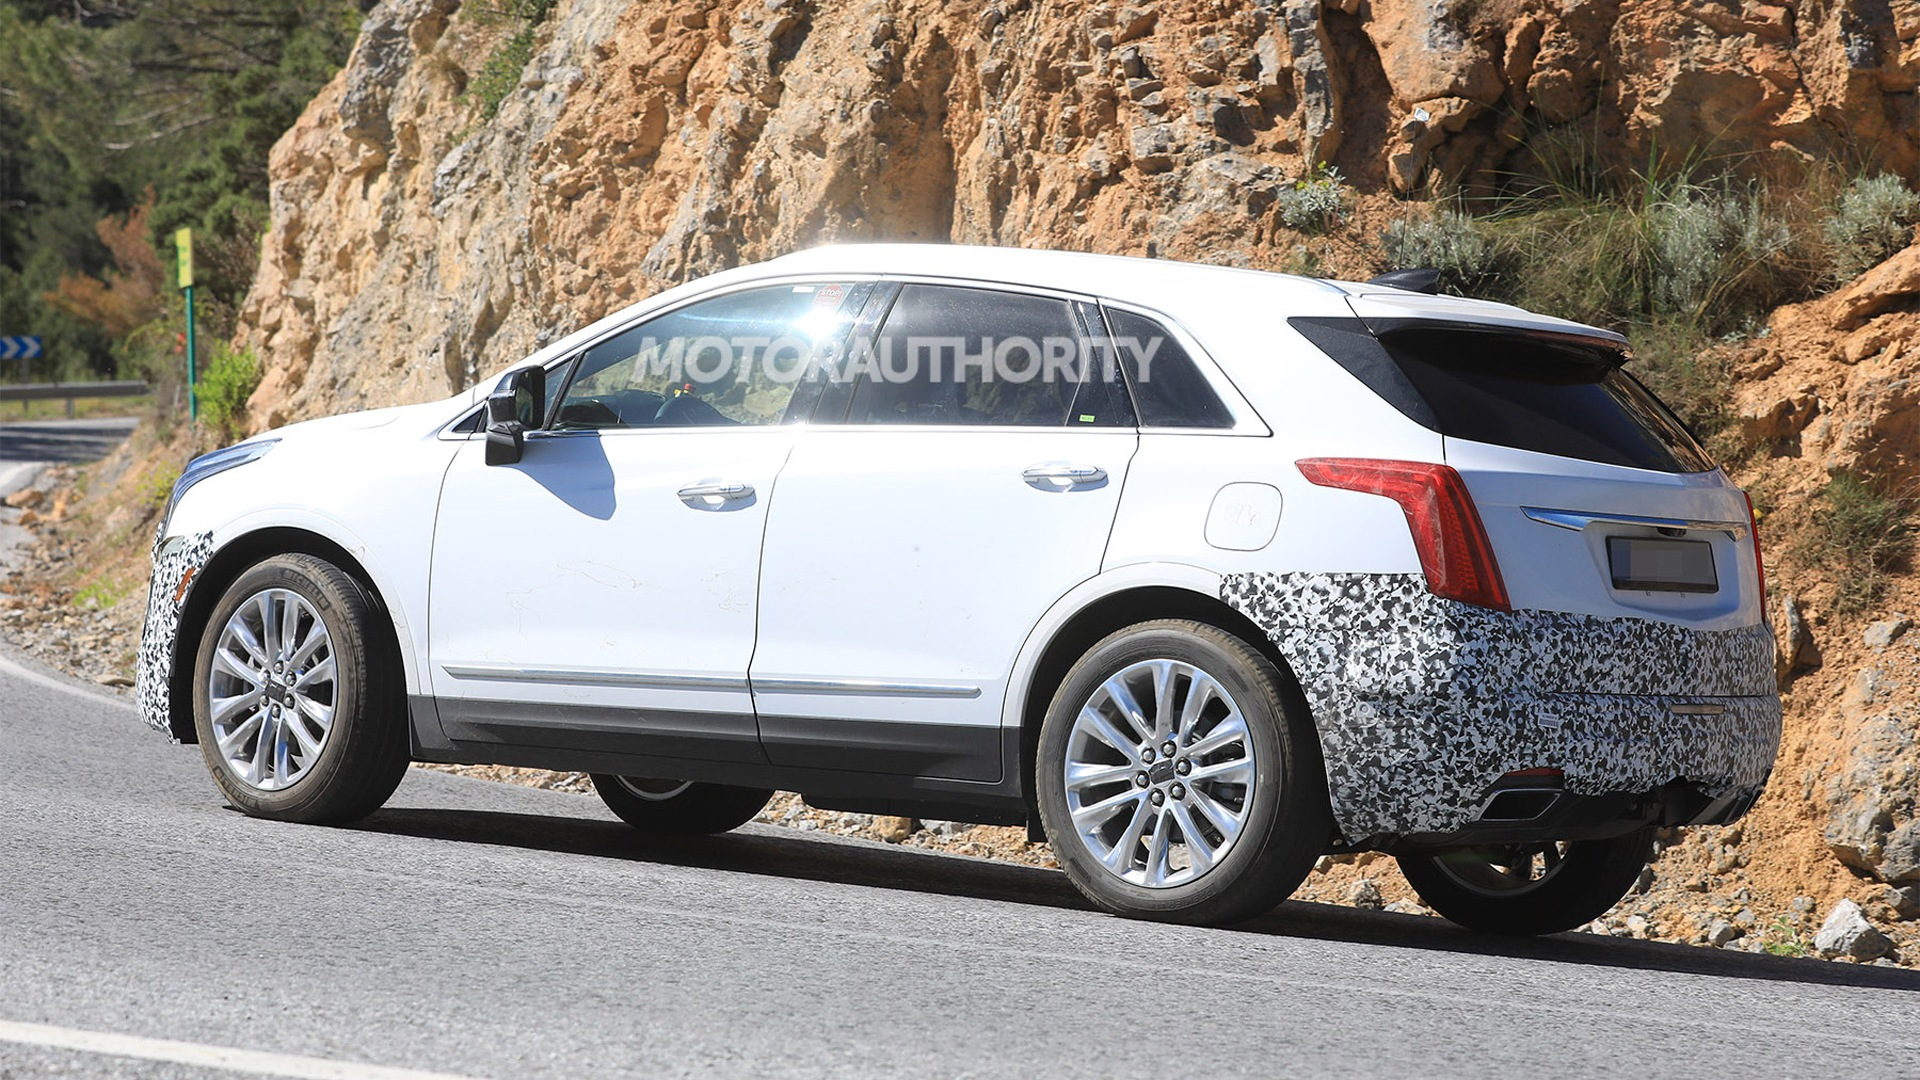 29 New 2020 Spy Shots Cadillac Xt5 Review